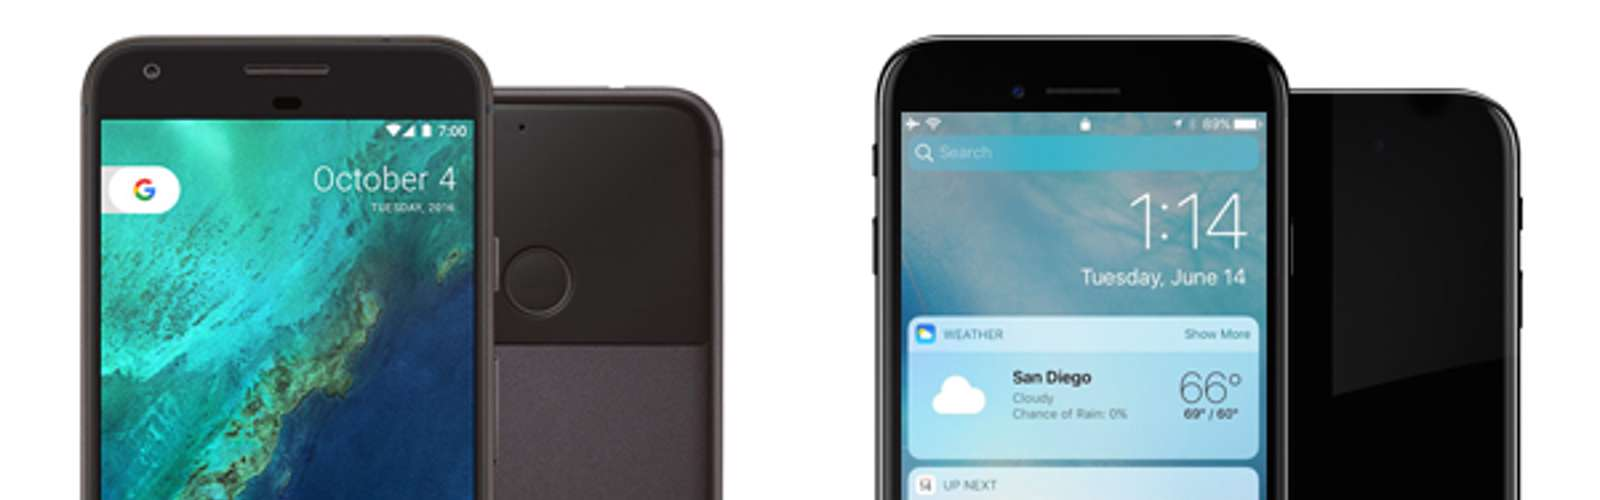 Google Pixel vs iPhone 7